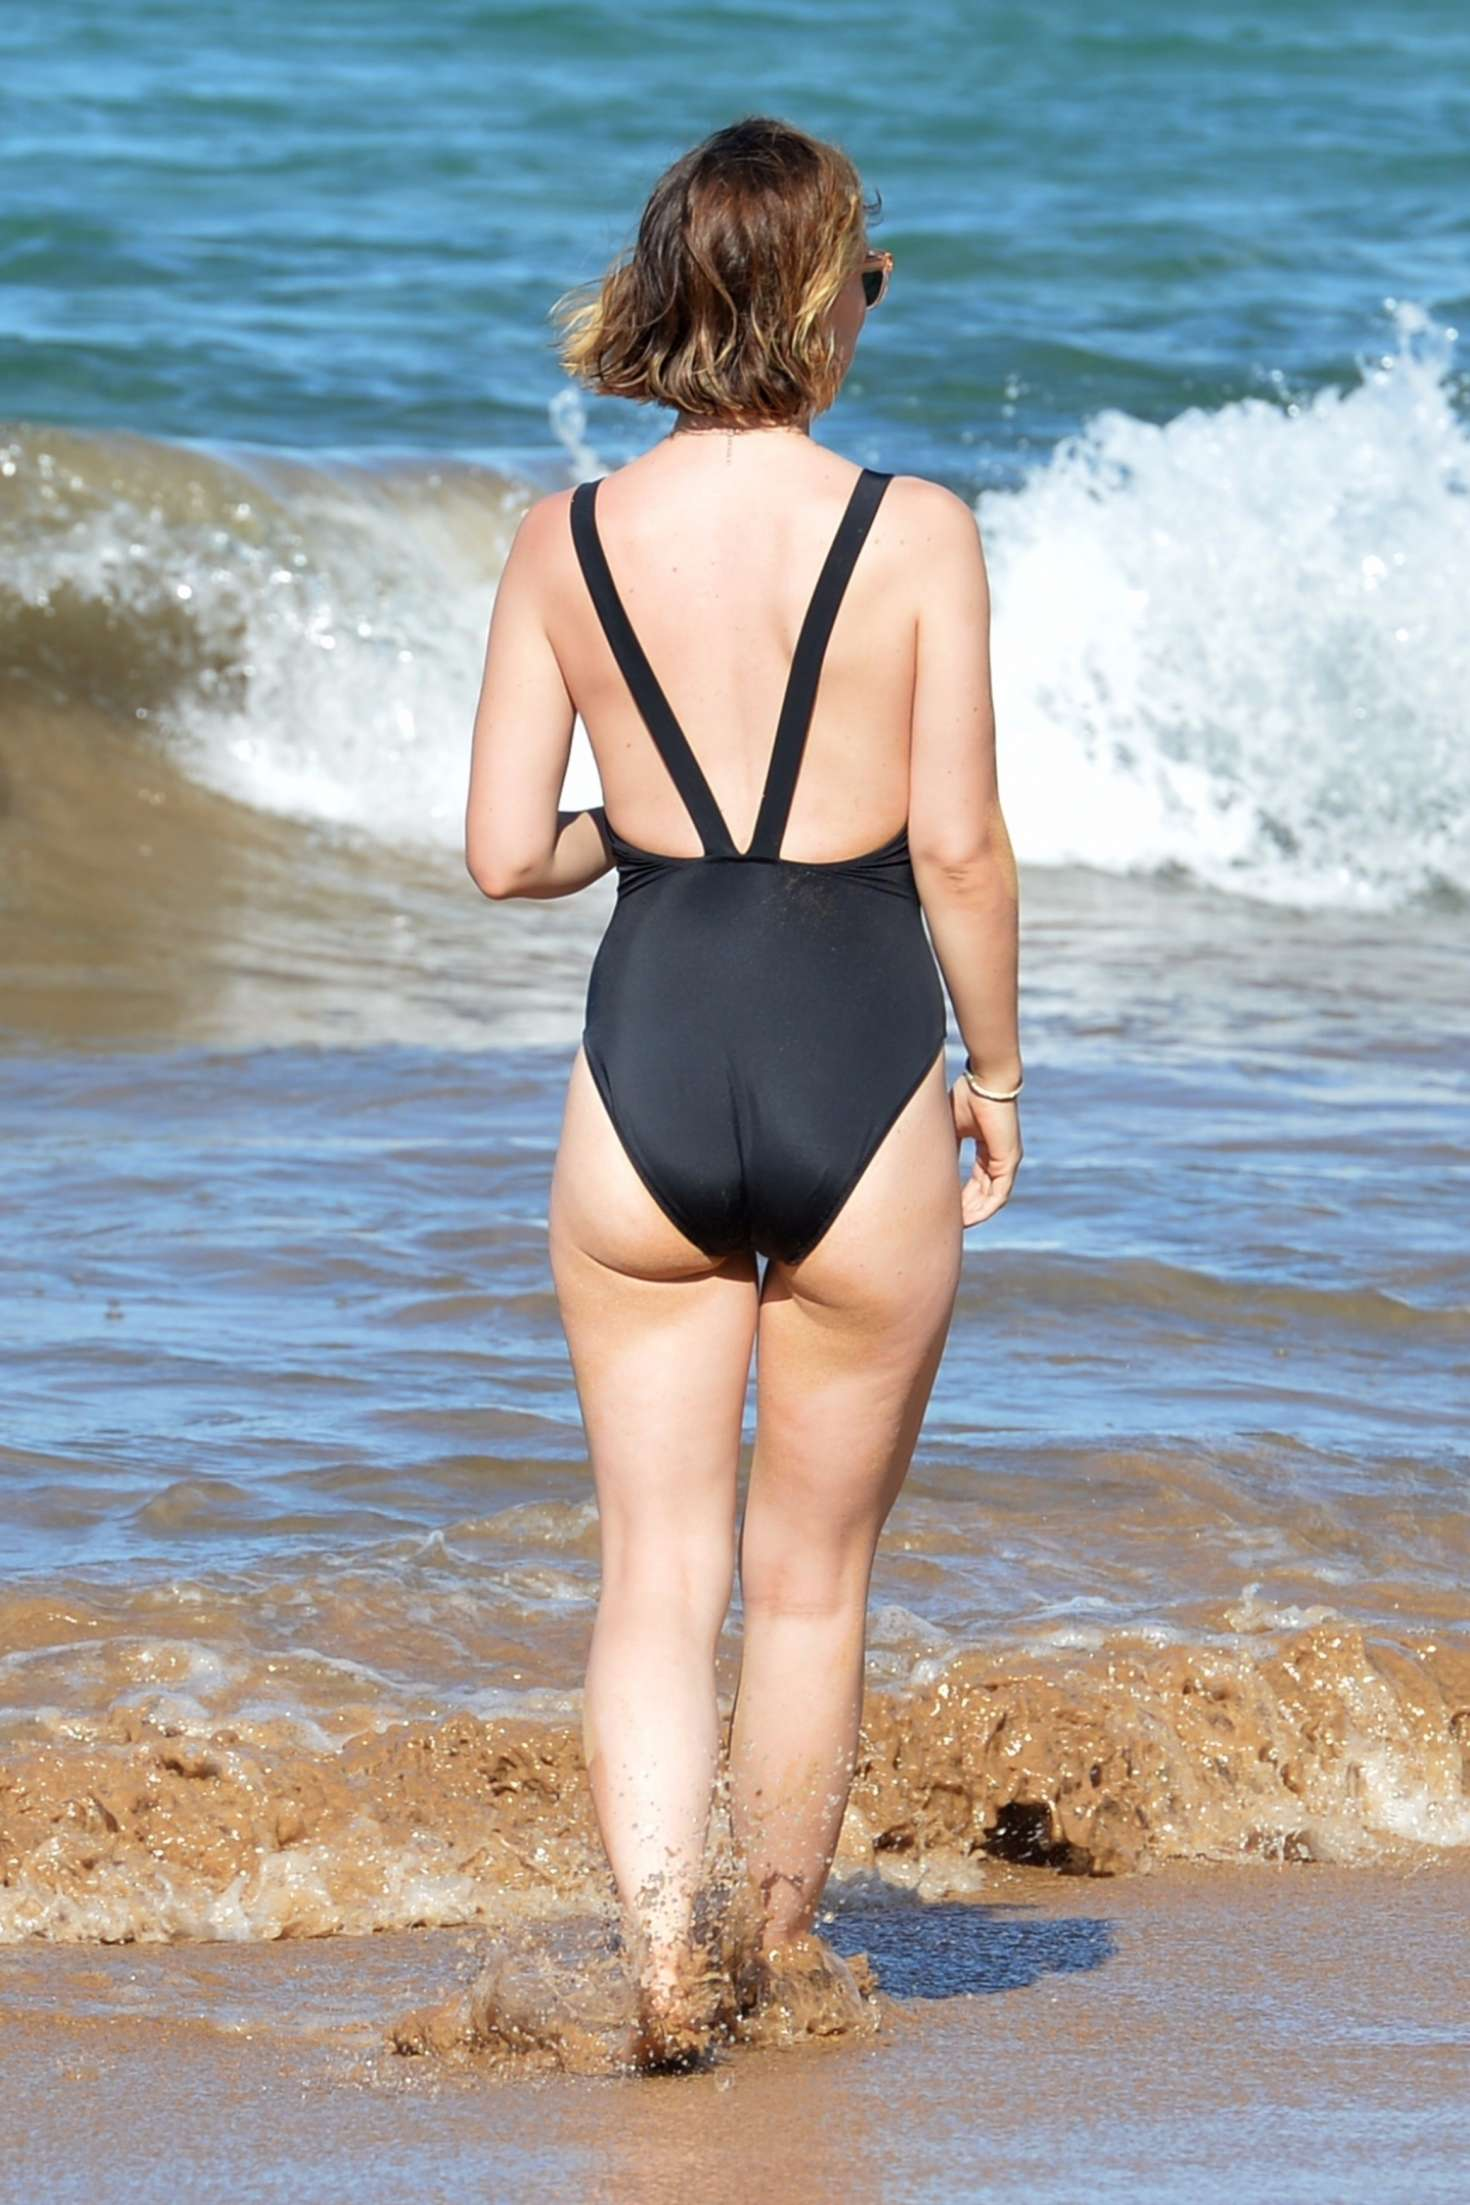 Olivia wilde in swimsuit 2017 07 gotceleb olivia wilde in swimsuit 2017 07 full size voltagebd Image collections